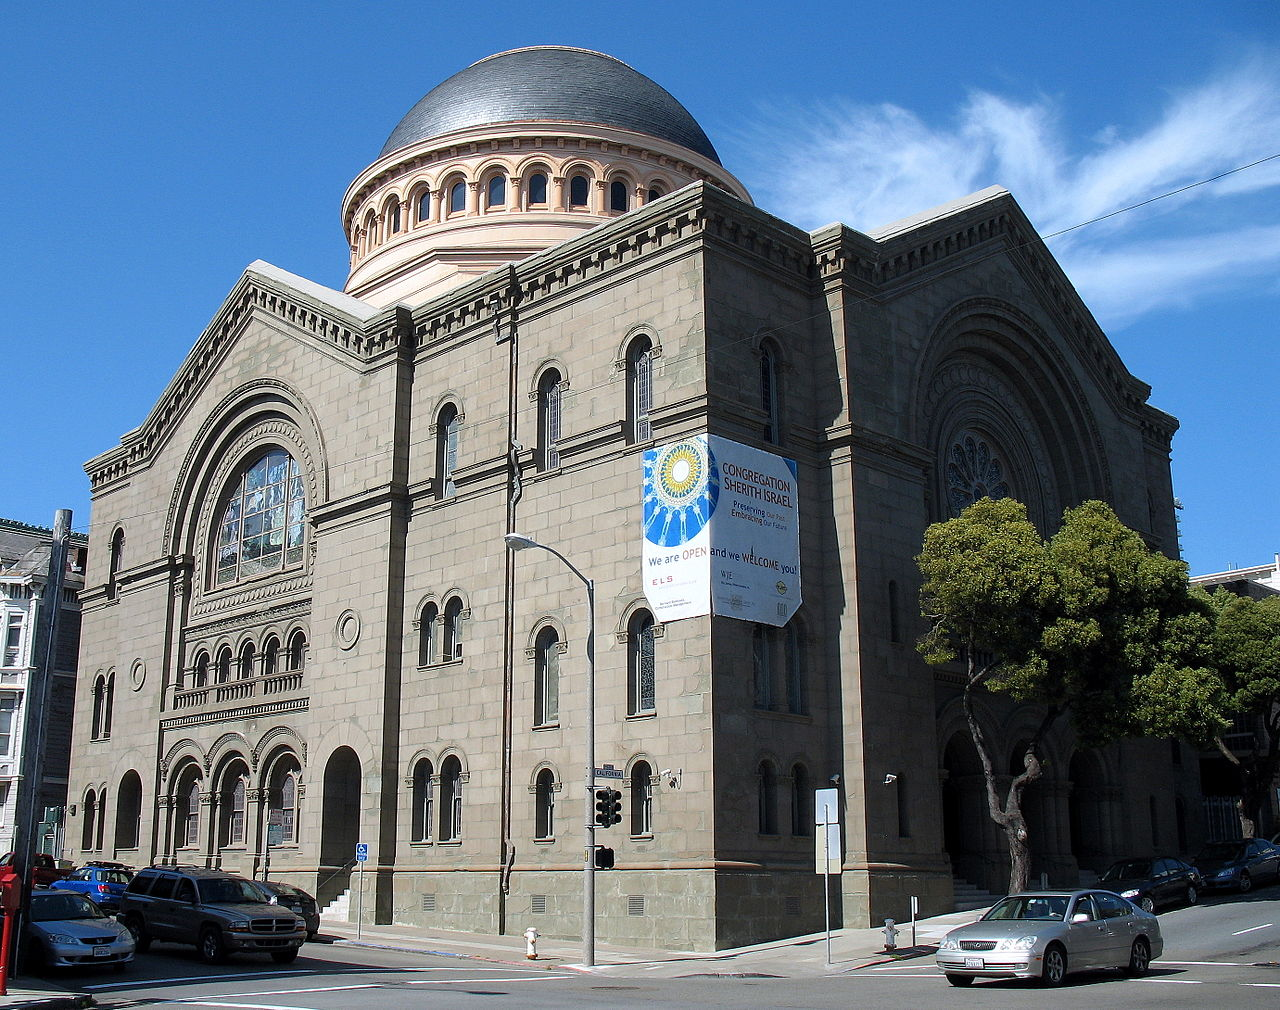 Congregation Sherith Israel was built in 1905 and is home to a Reform Jewish community.